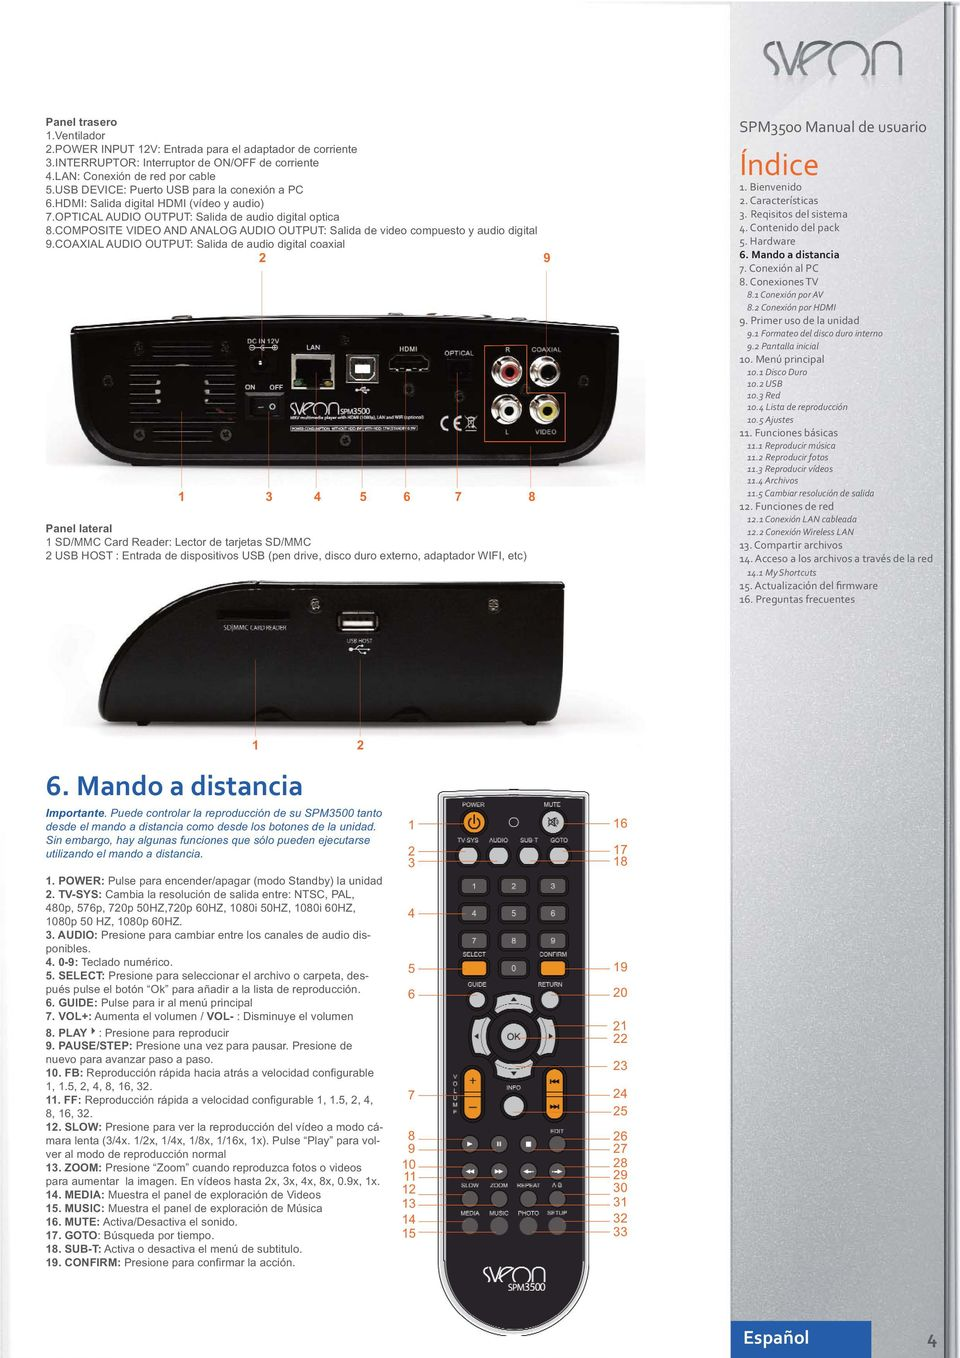 COMPOSITE VIDEO AND ANALOG AUDIO OUTPUT: Salida de video compuesto y audio digital 9.